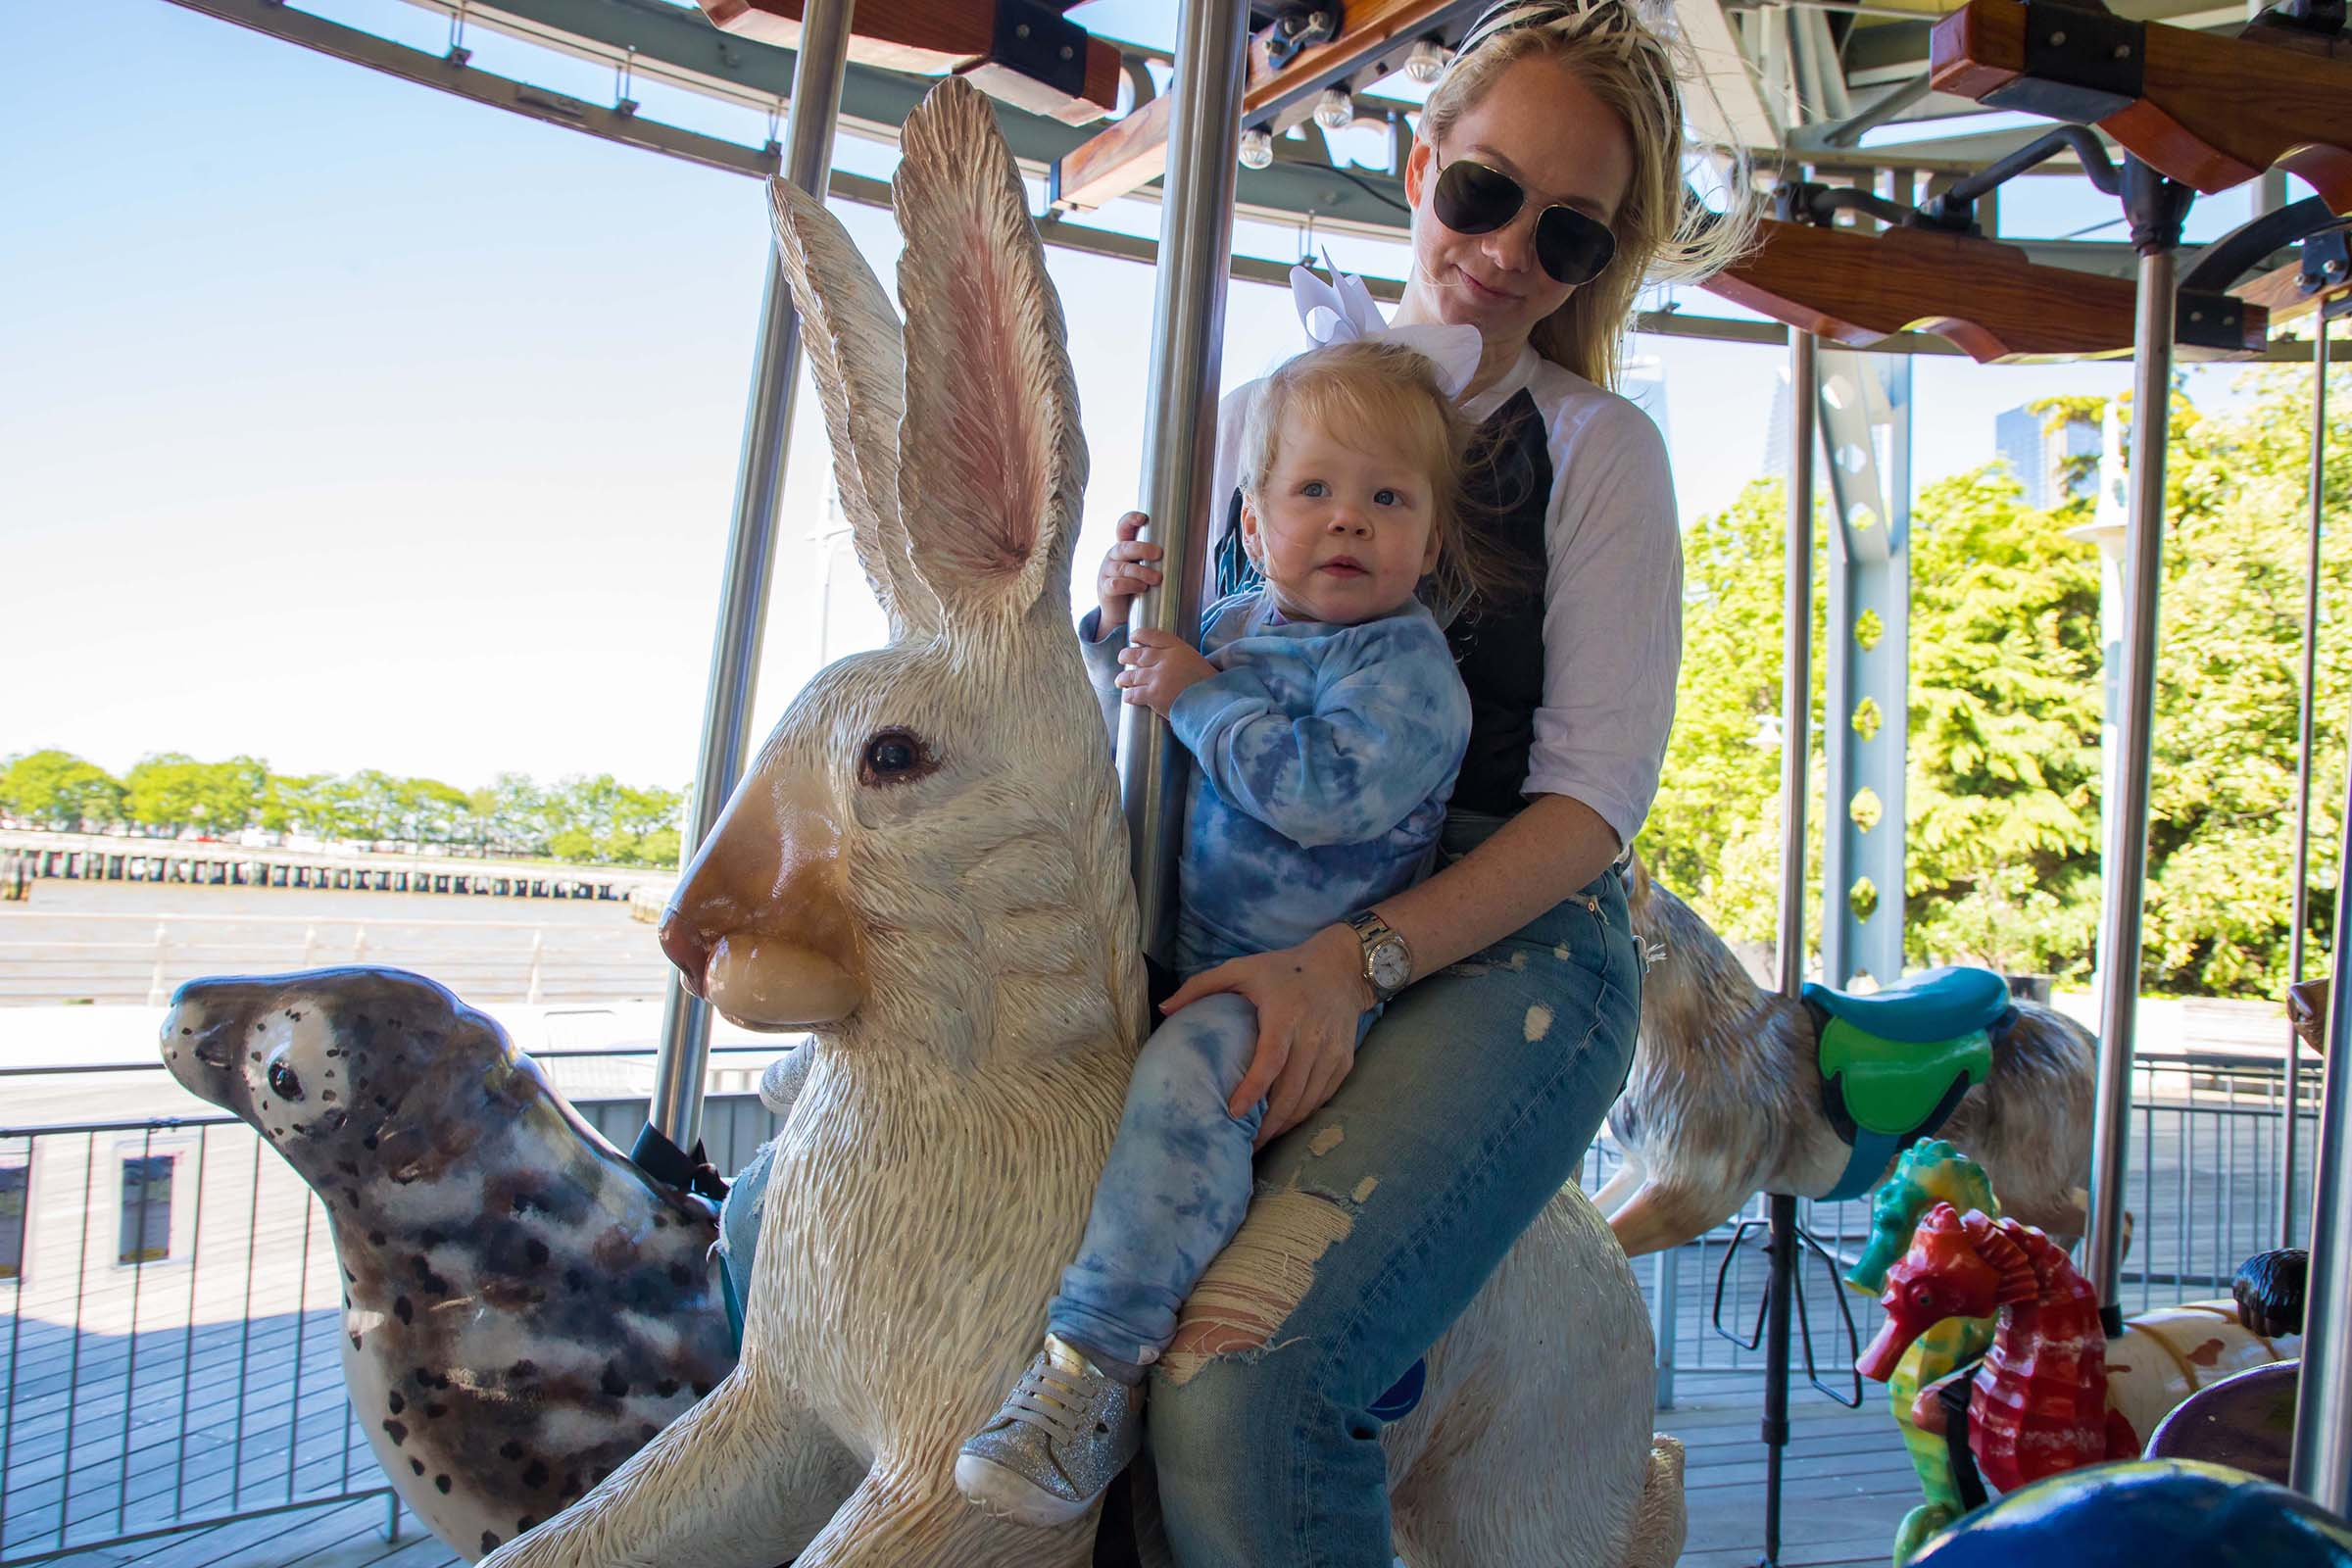 Kids and adults enjoy a ride on the carousel at Pier 62